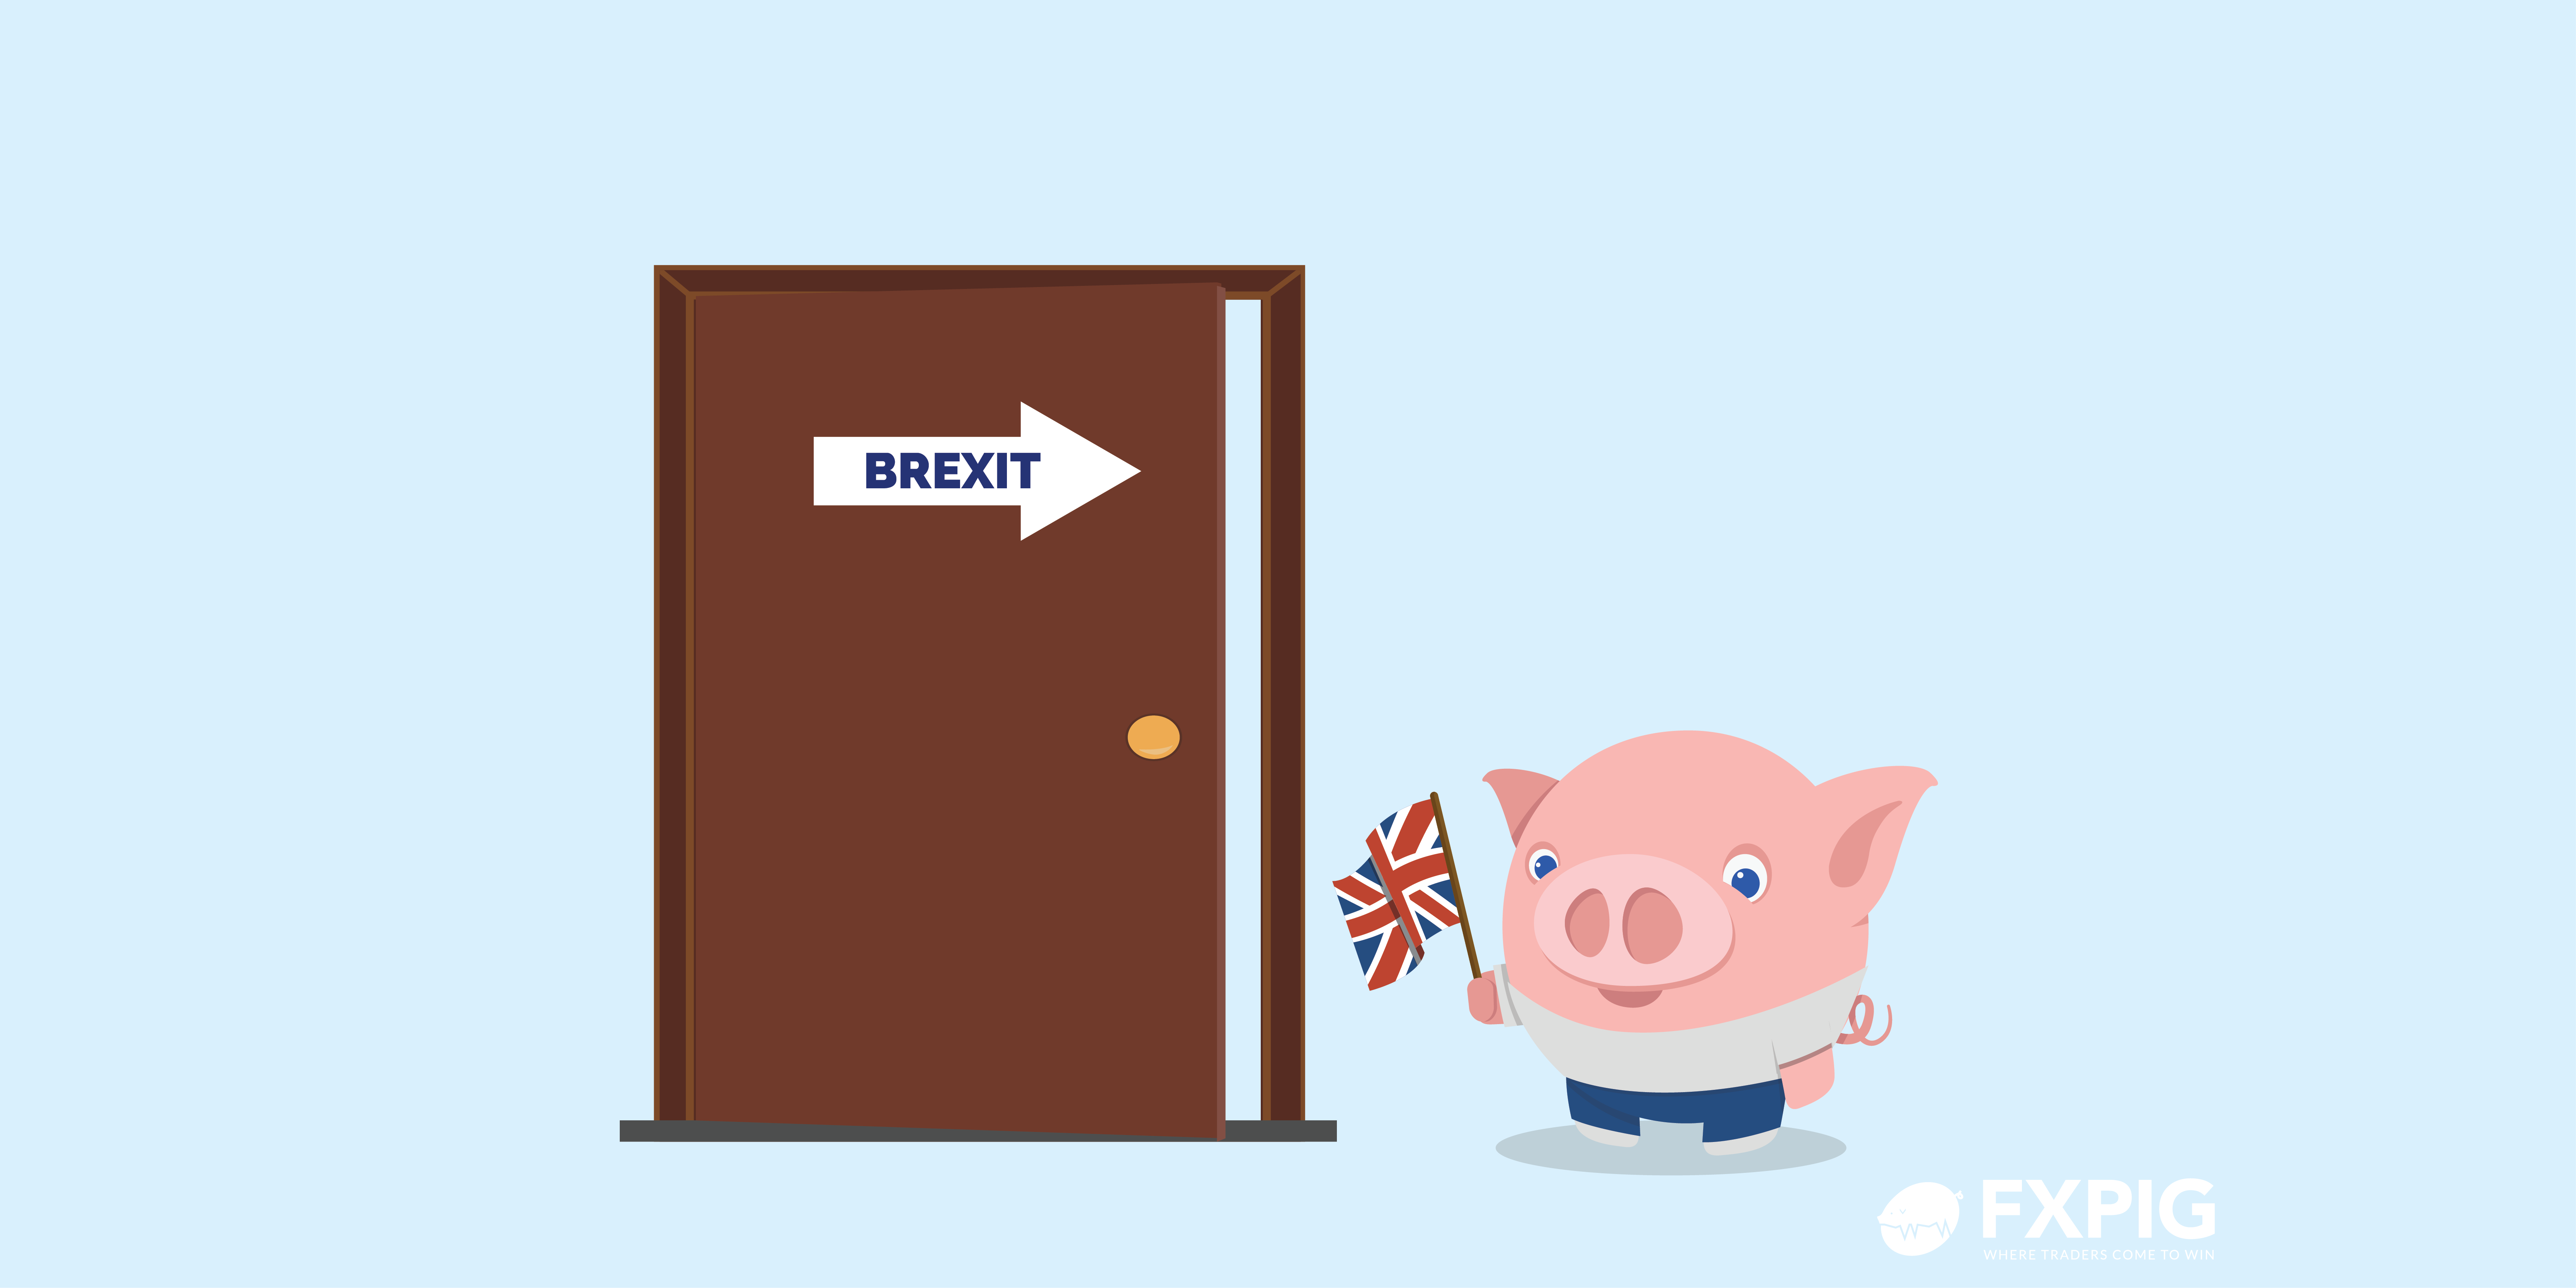 Forex_Trading_Fx_Trader_FXPIG_Brexit_GBP-volatile_Berxit-vote